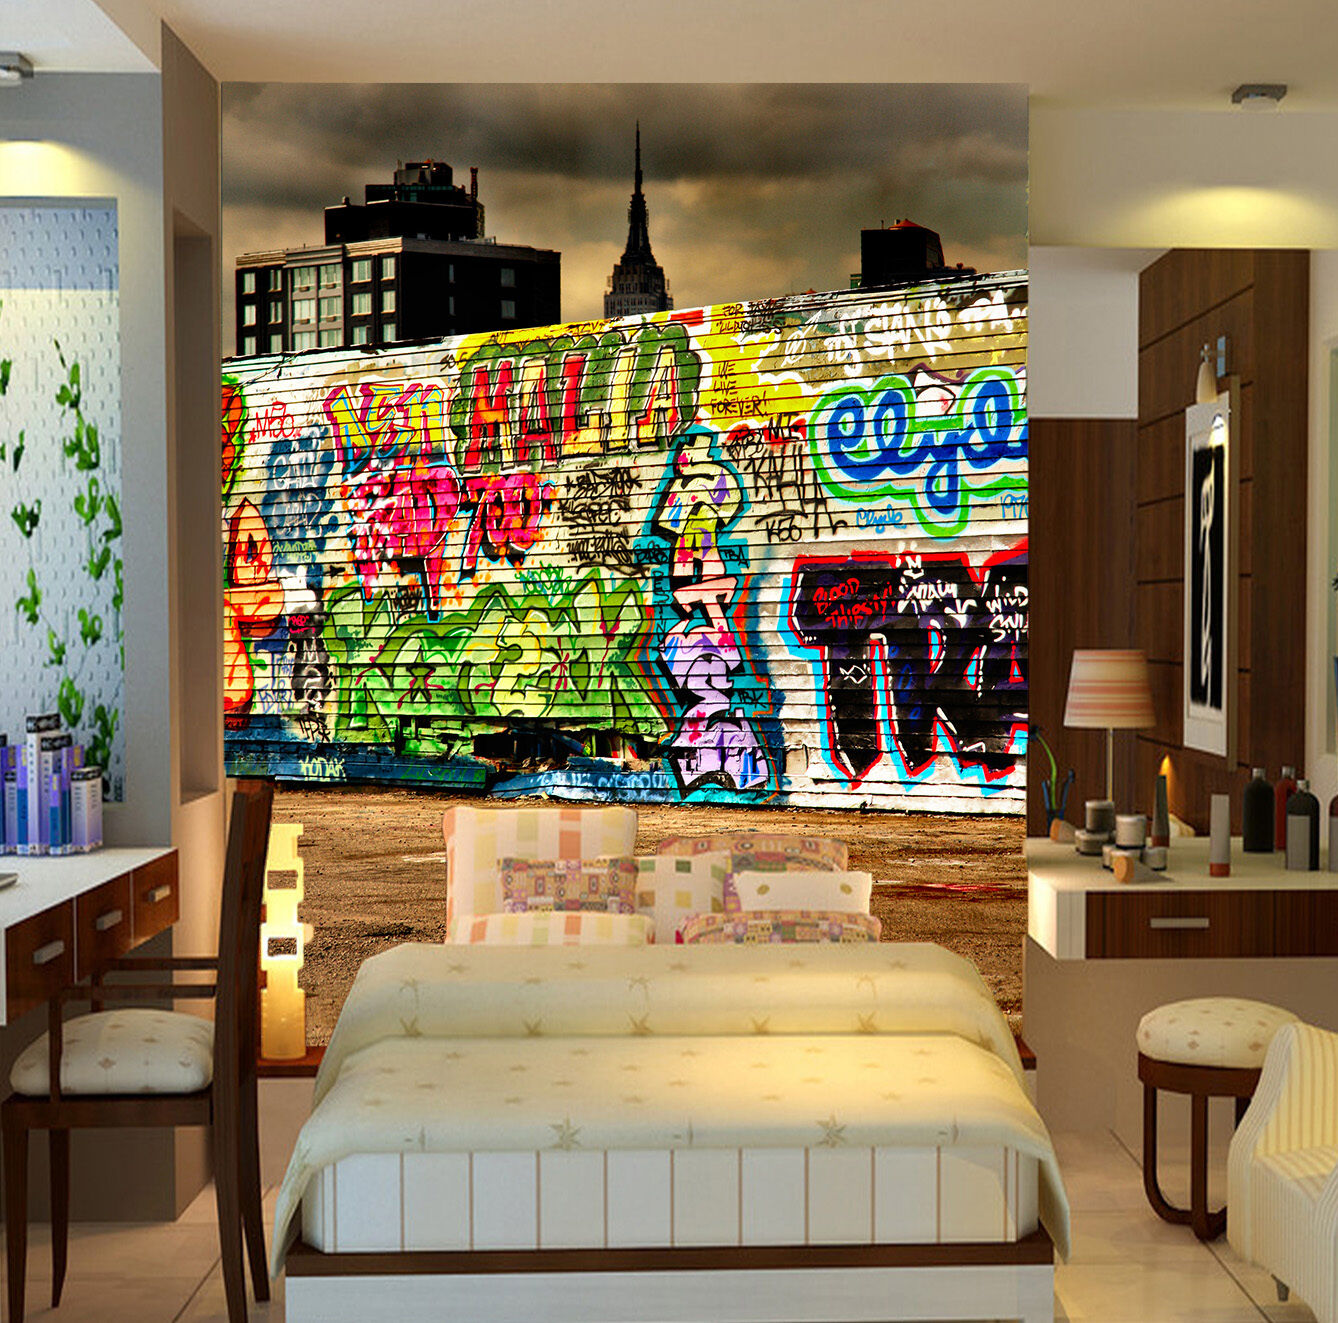 3D City Graffiti 621 Wall Paper Wall Print Decal Wall Deco Wall Indoor Murals